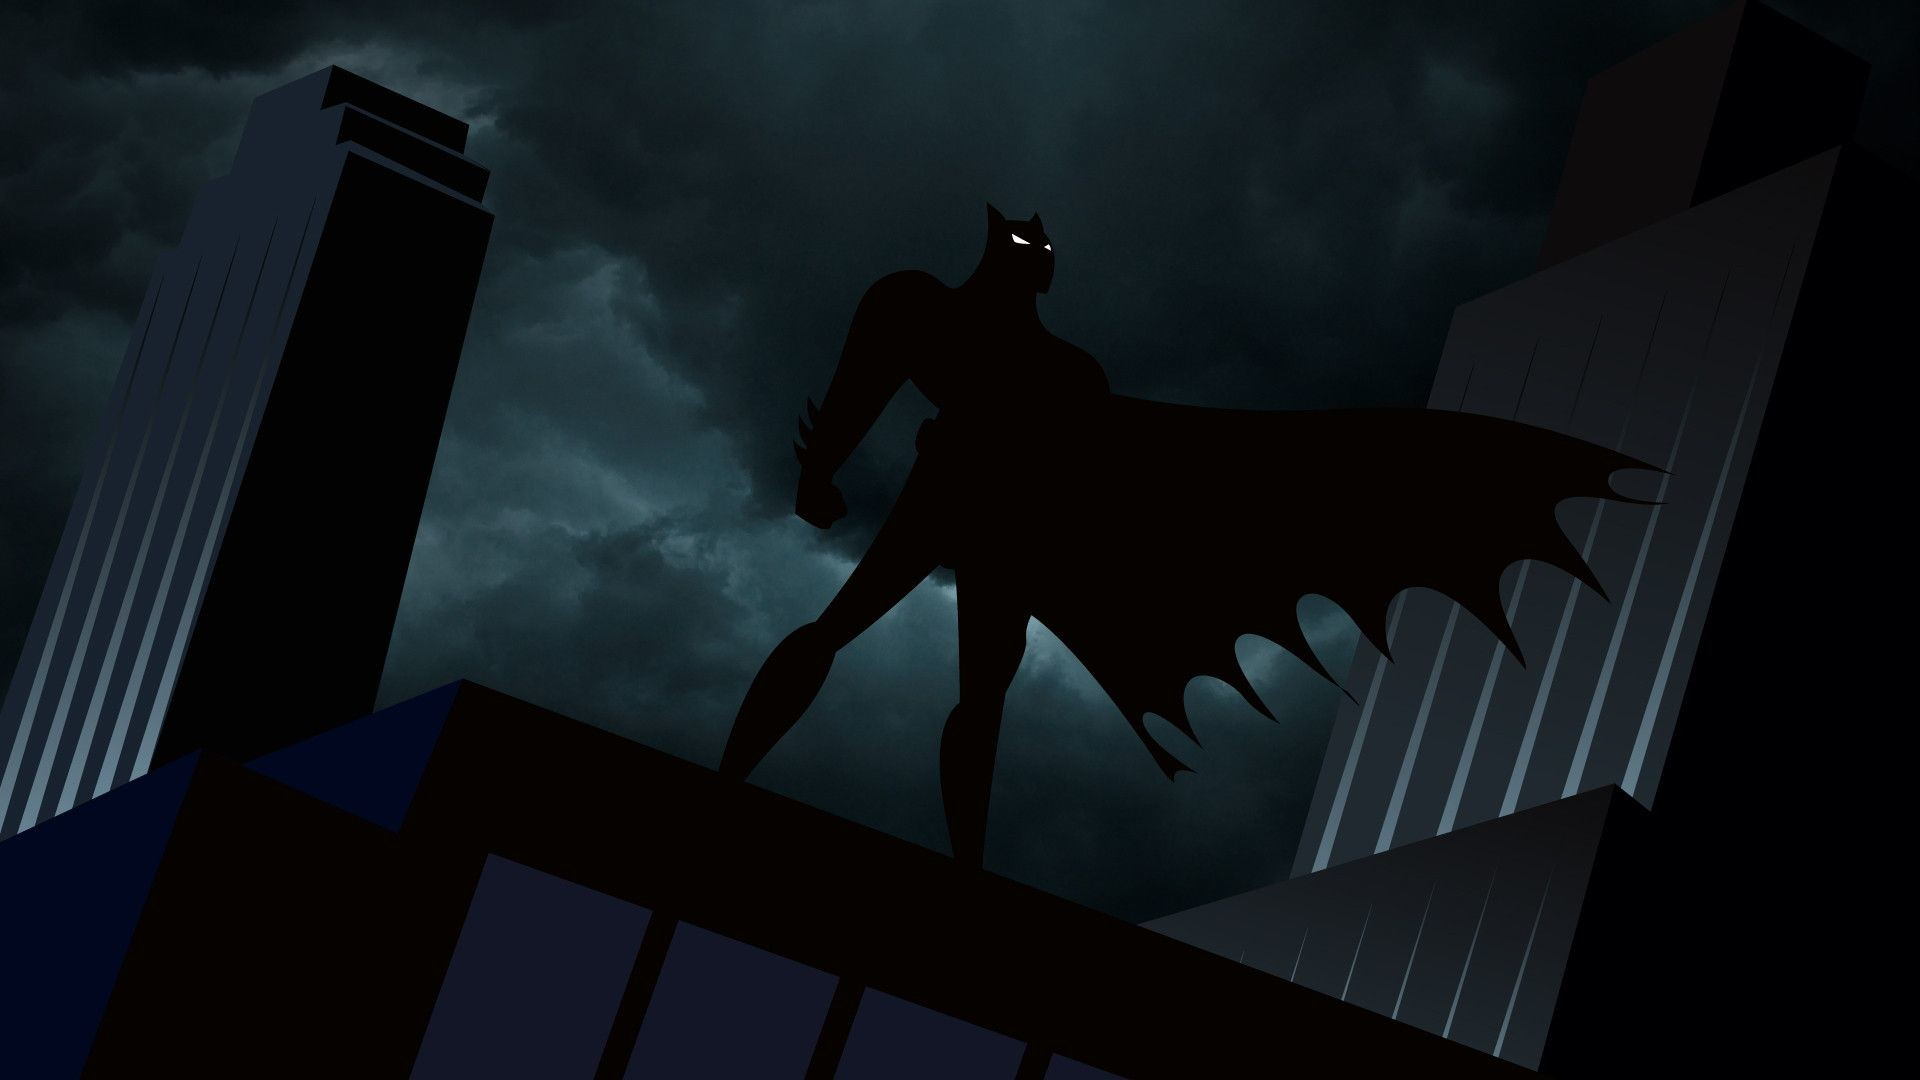 2560x1440 Collection Of Batman Pc Wallpaper On HDWallpapers Hd Wallpapers